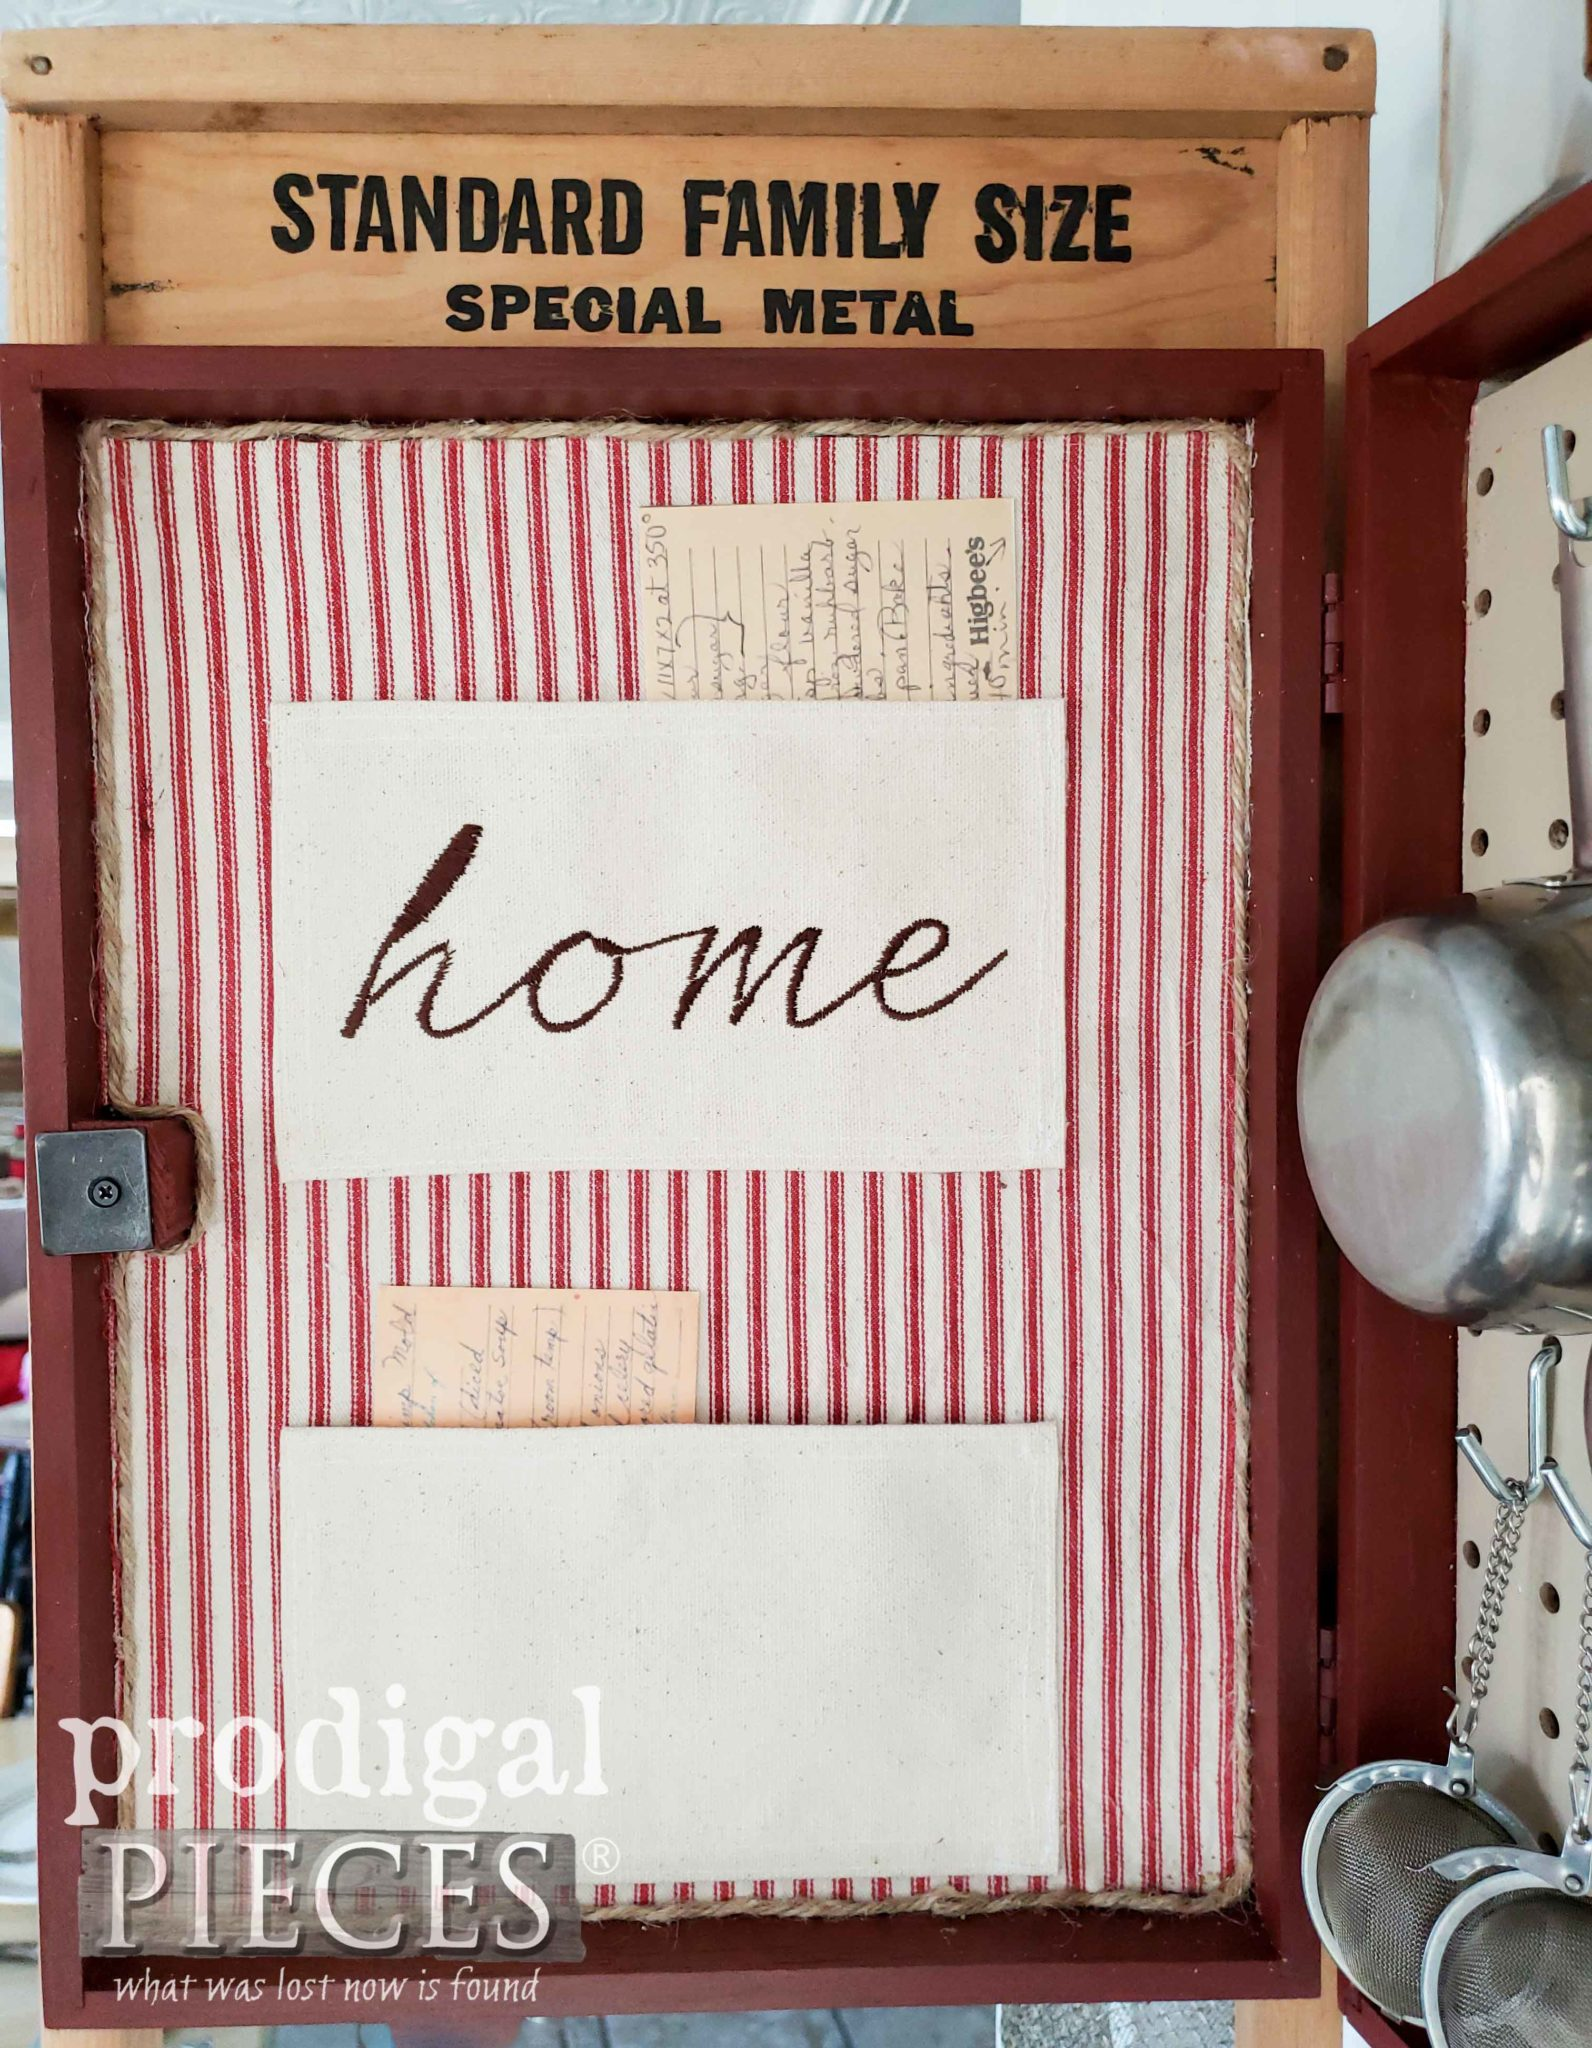 Recipe Pockets in Upcycled Washboard Cupboard for Kitchen by Larissa of Prodigal Pieces | prodigalpieces.com #prodigalpieces #handmade #farmhouse #home #homedecor